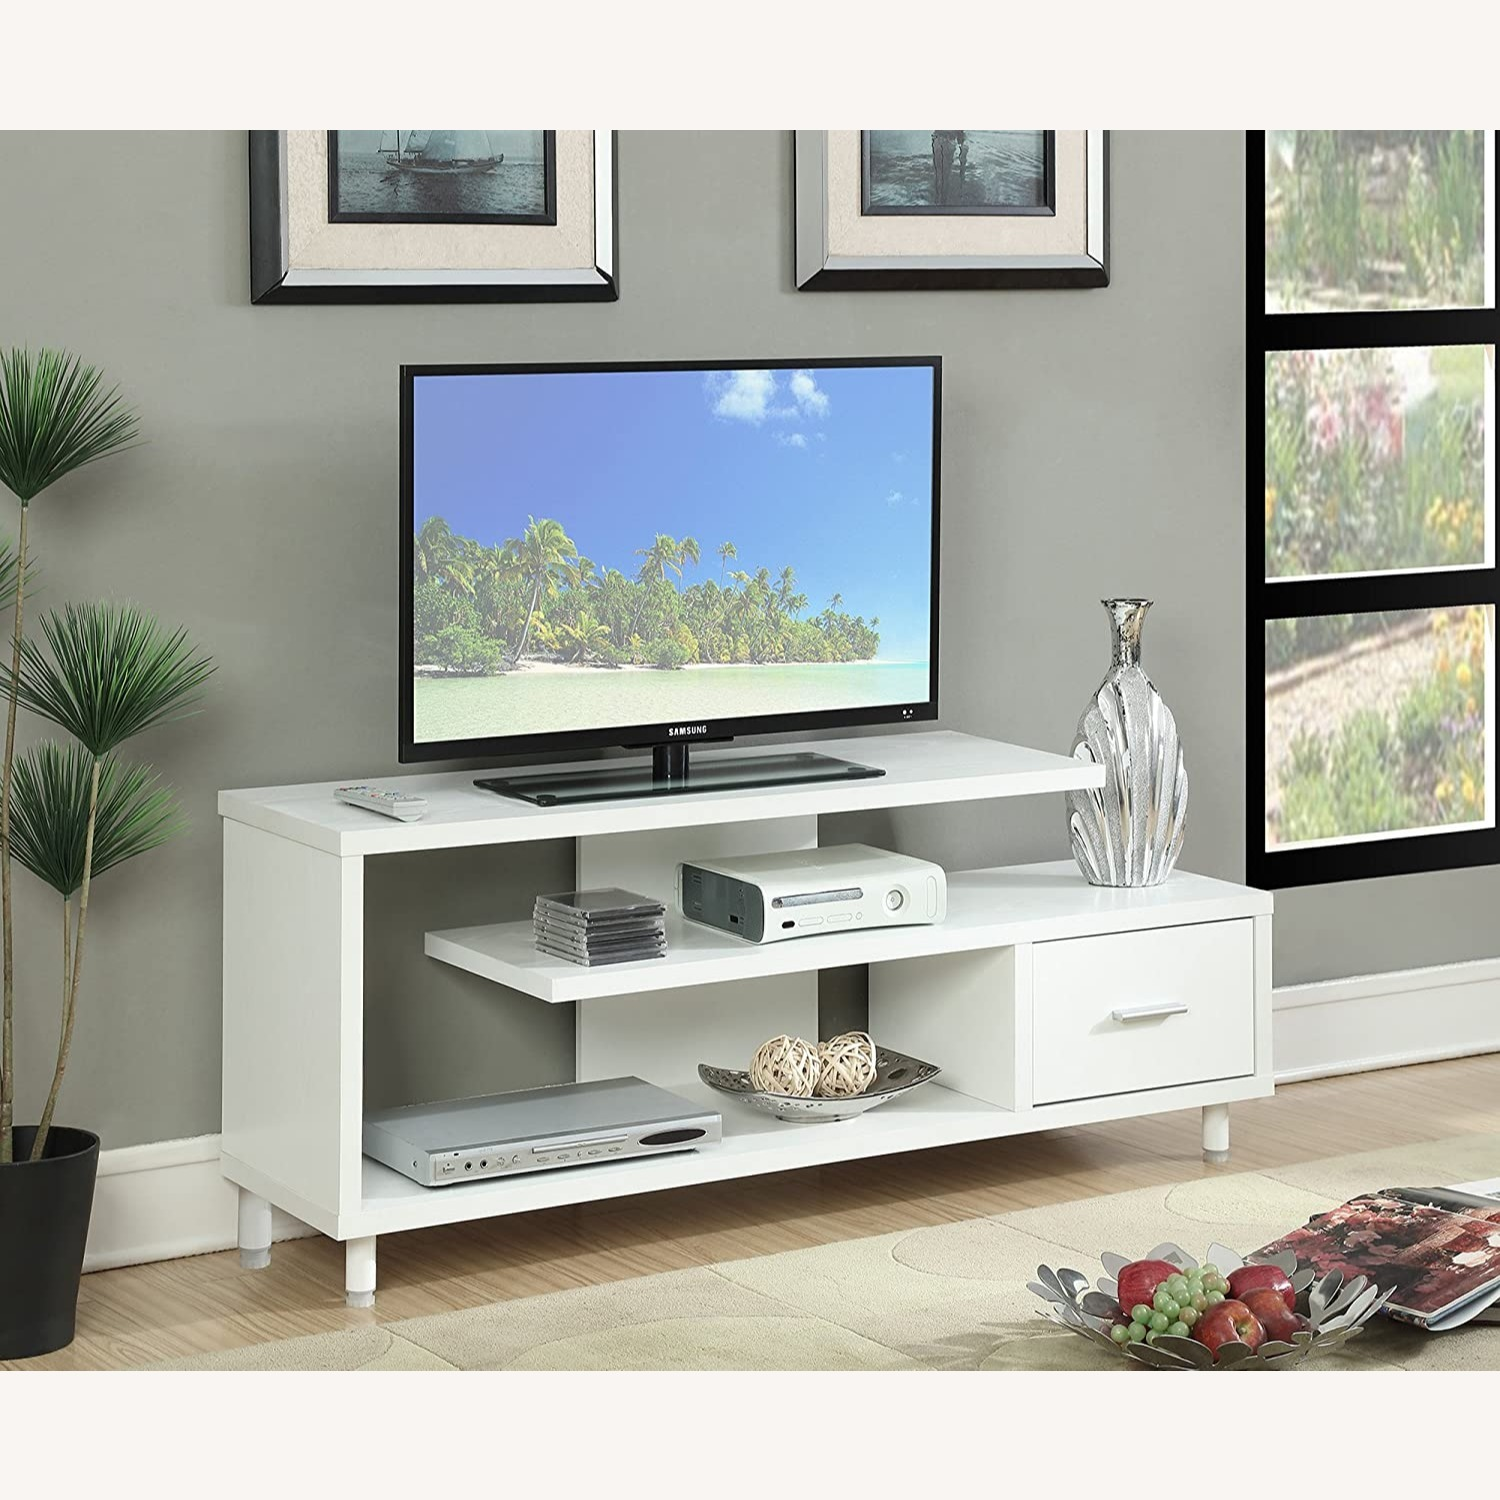 "Convenience Concepts Modern 60"" TV Stand White - image-1"